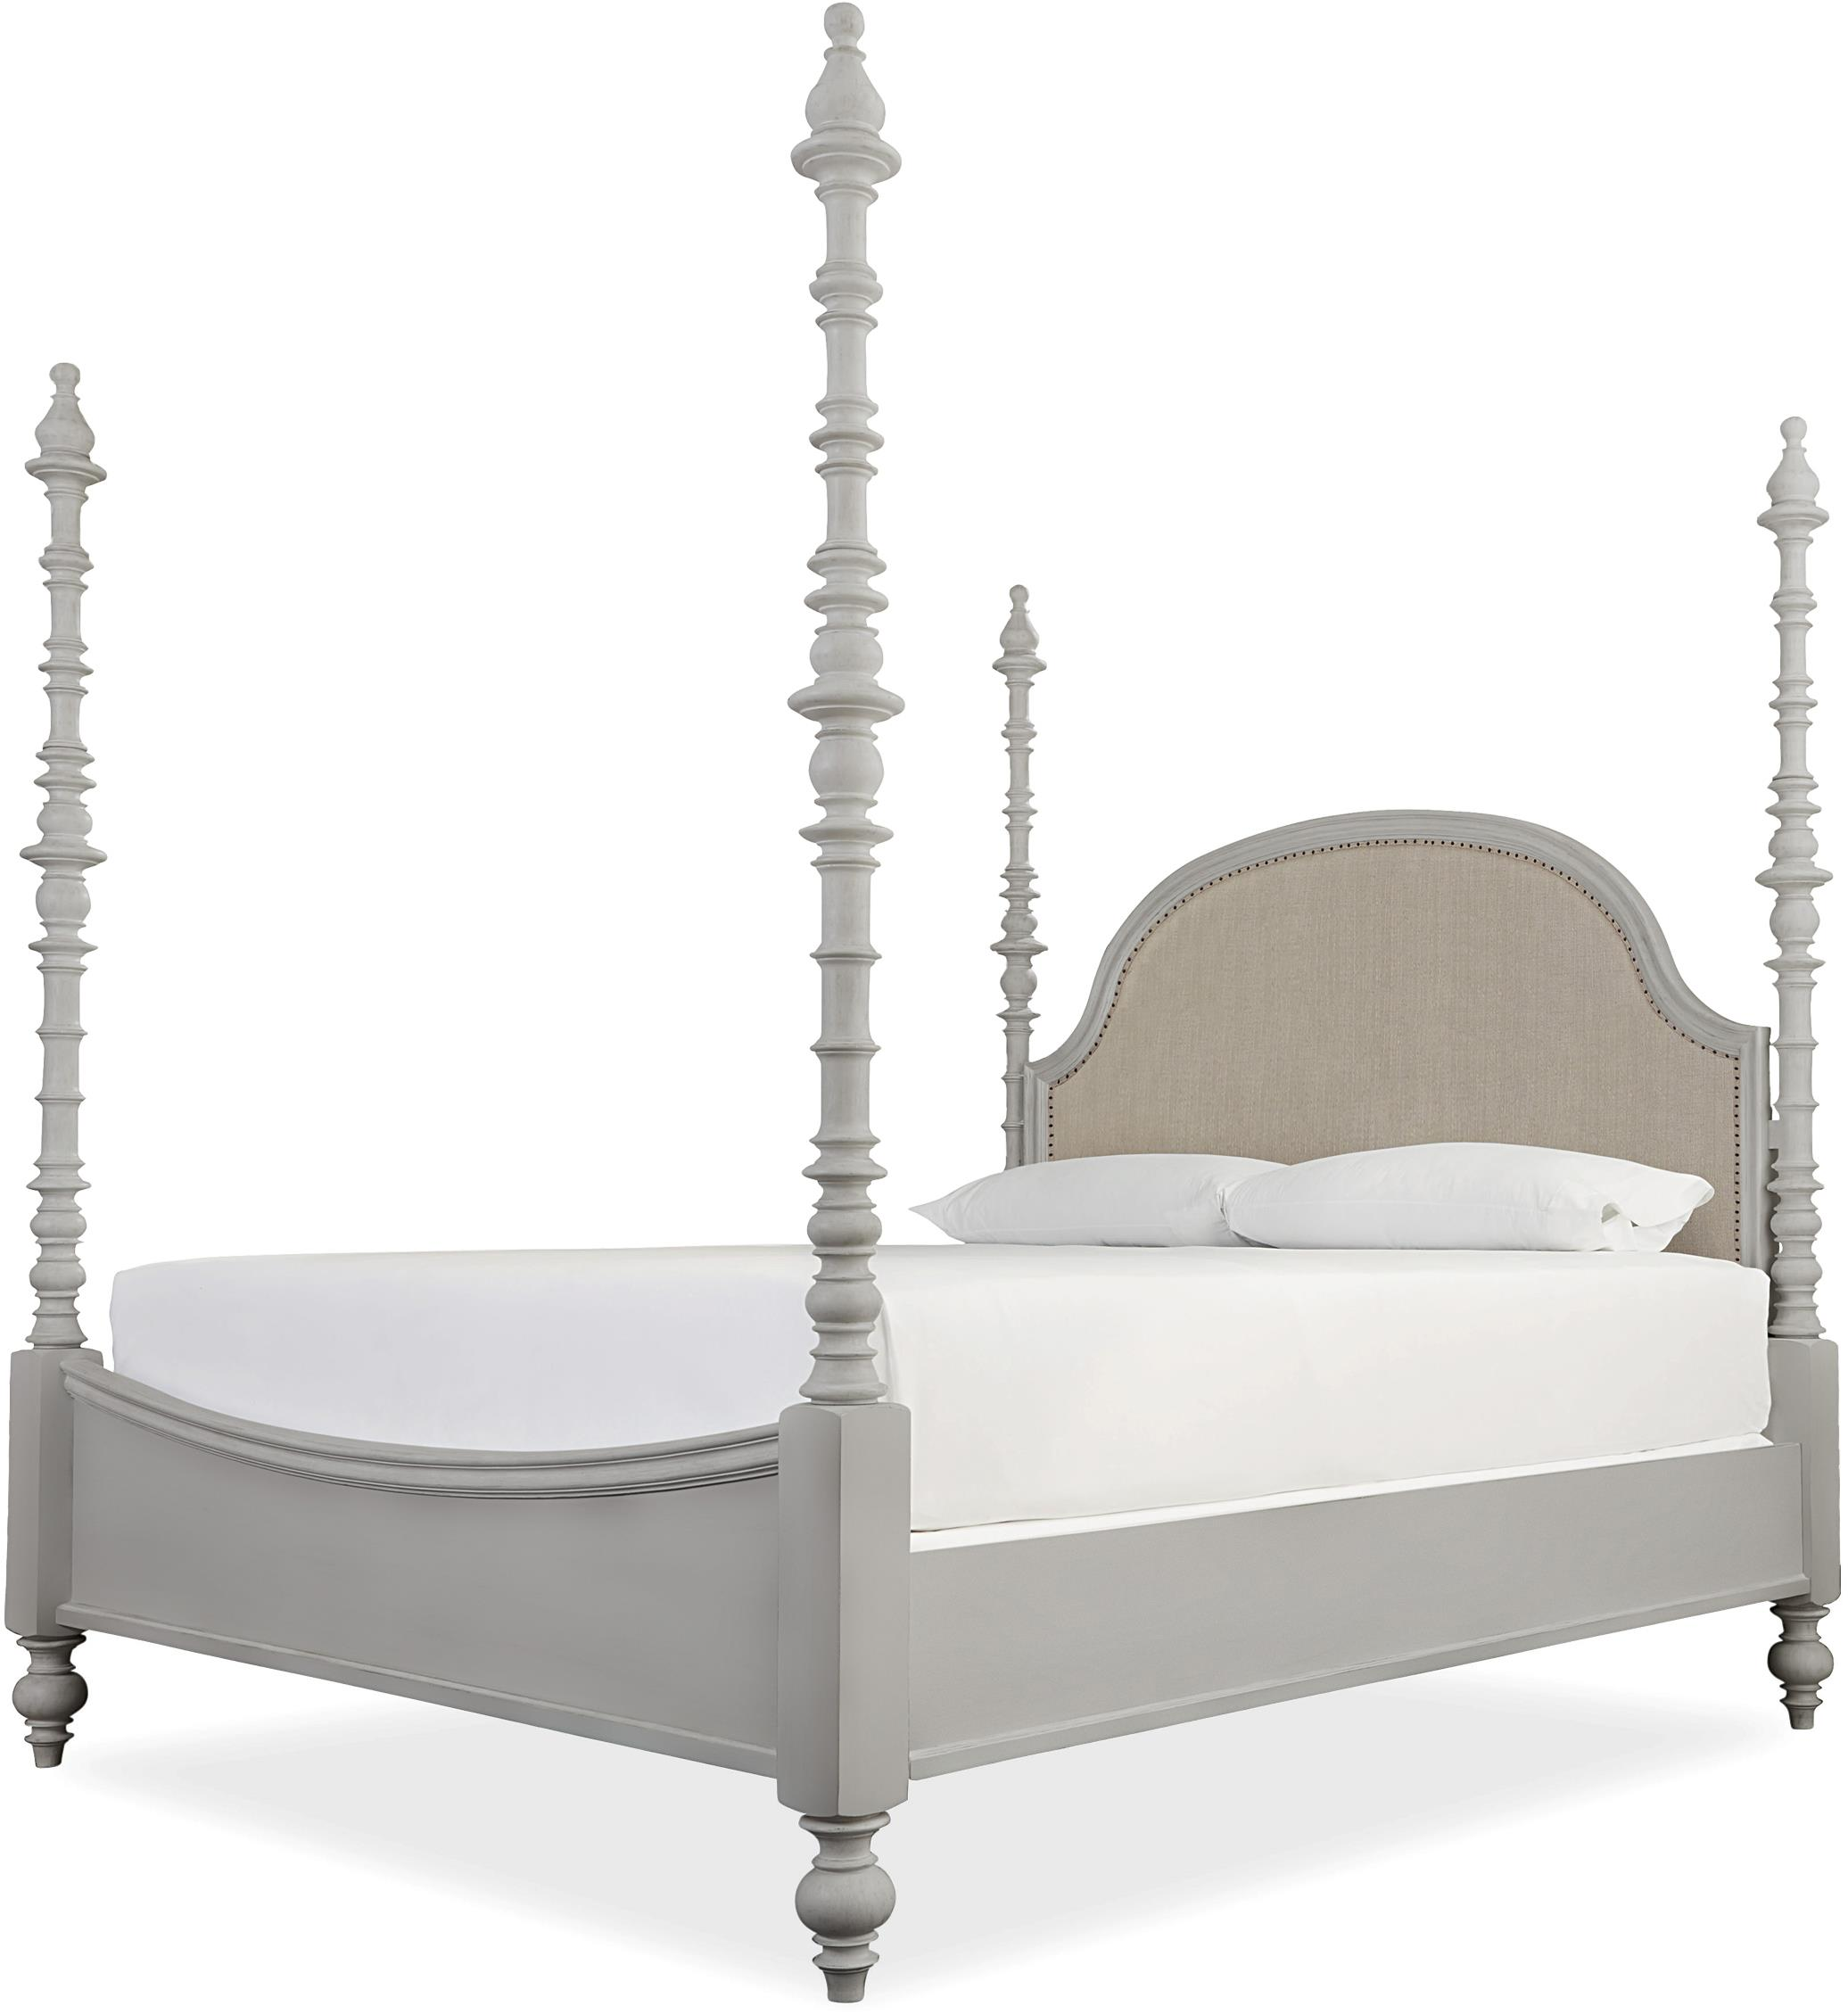 Paula Deen by Universal Dogwood The Dogwood California King Bed - Item Number: 599291B